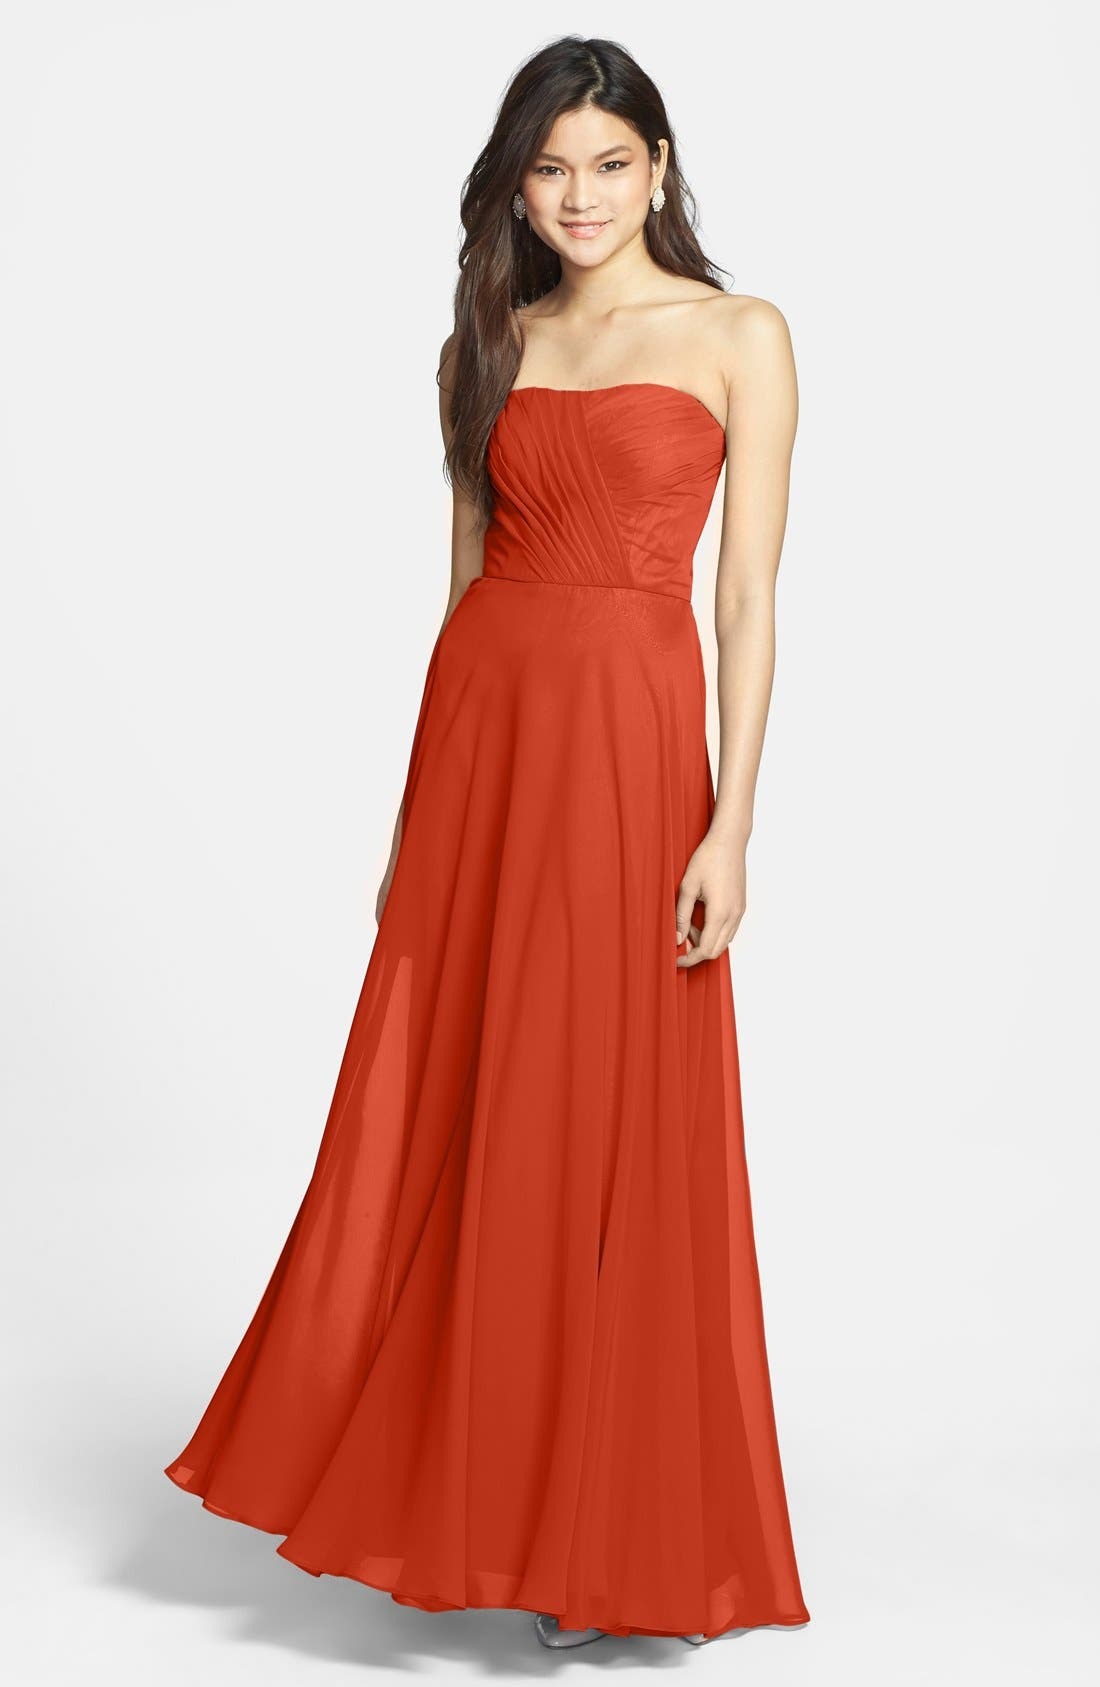 Main Image - Hailey by Adrianna Papell Strapless Chiffon Gown